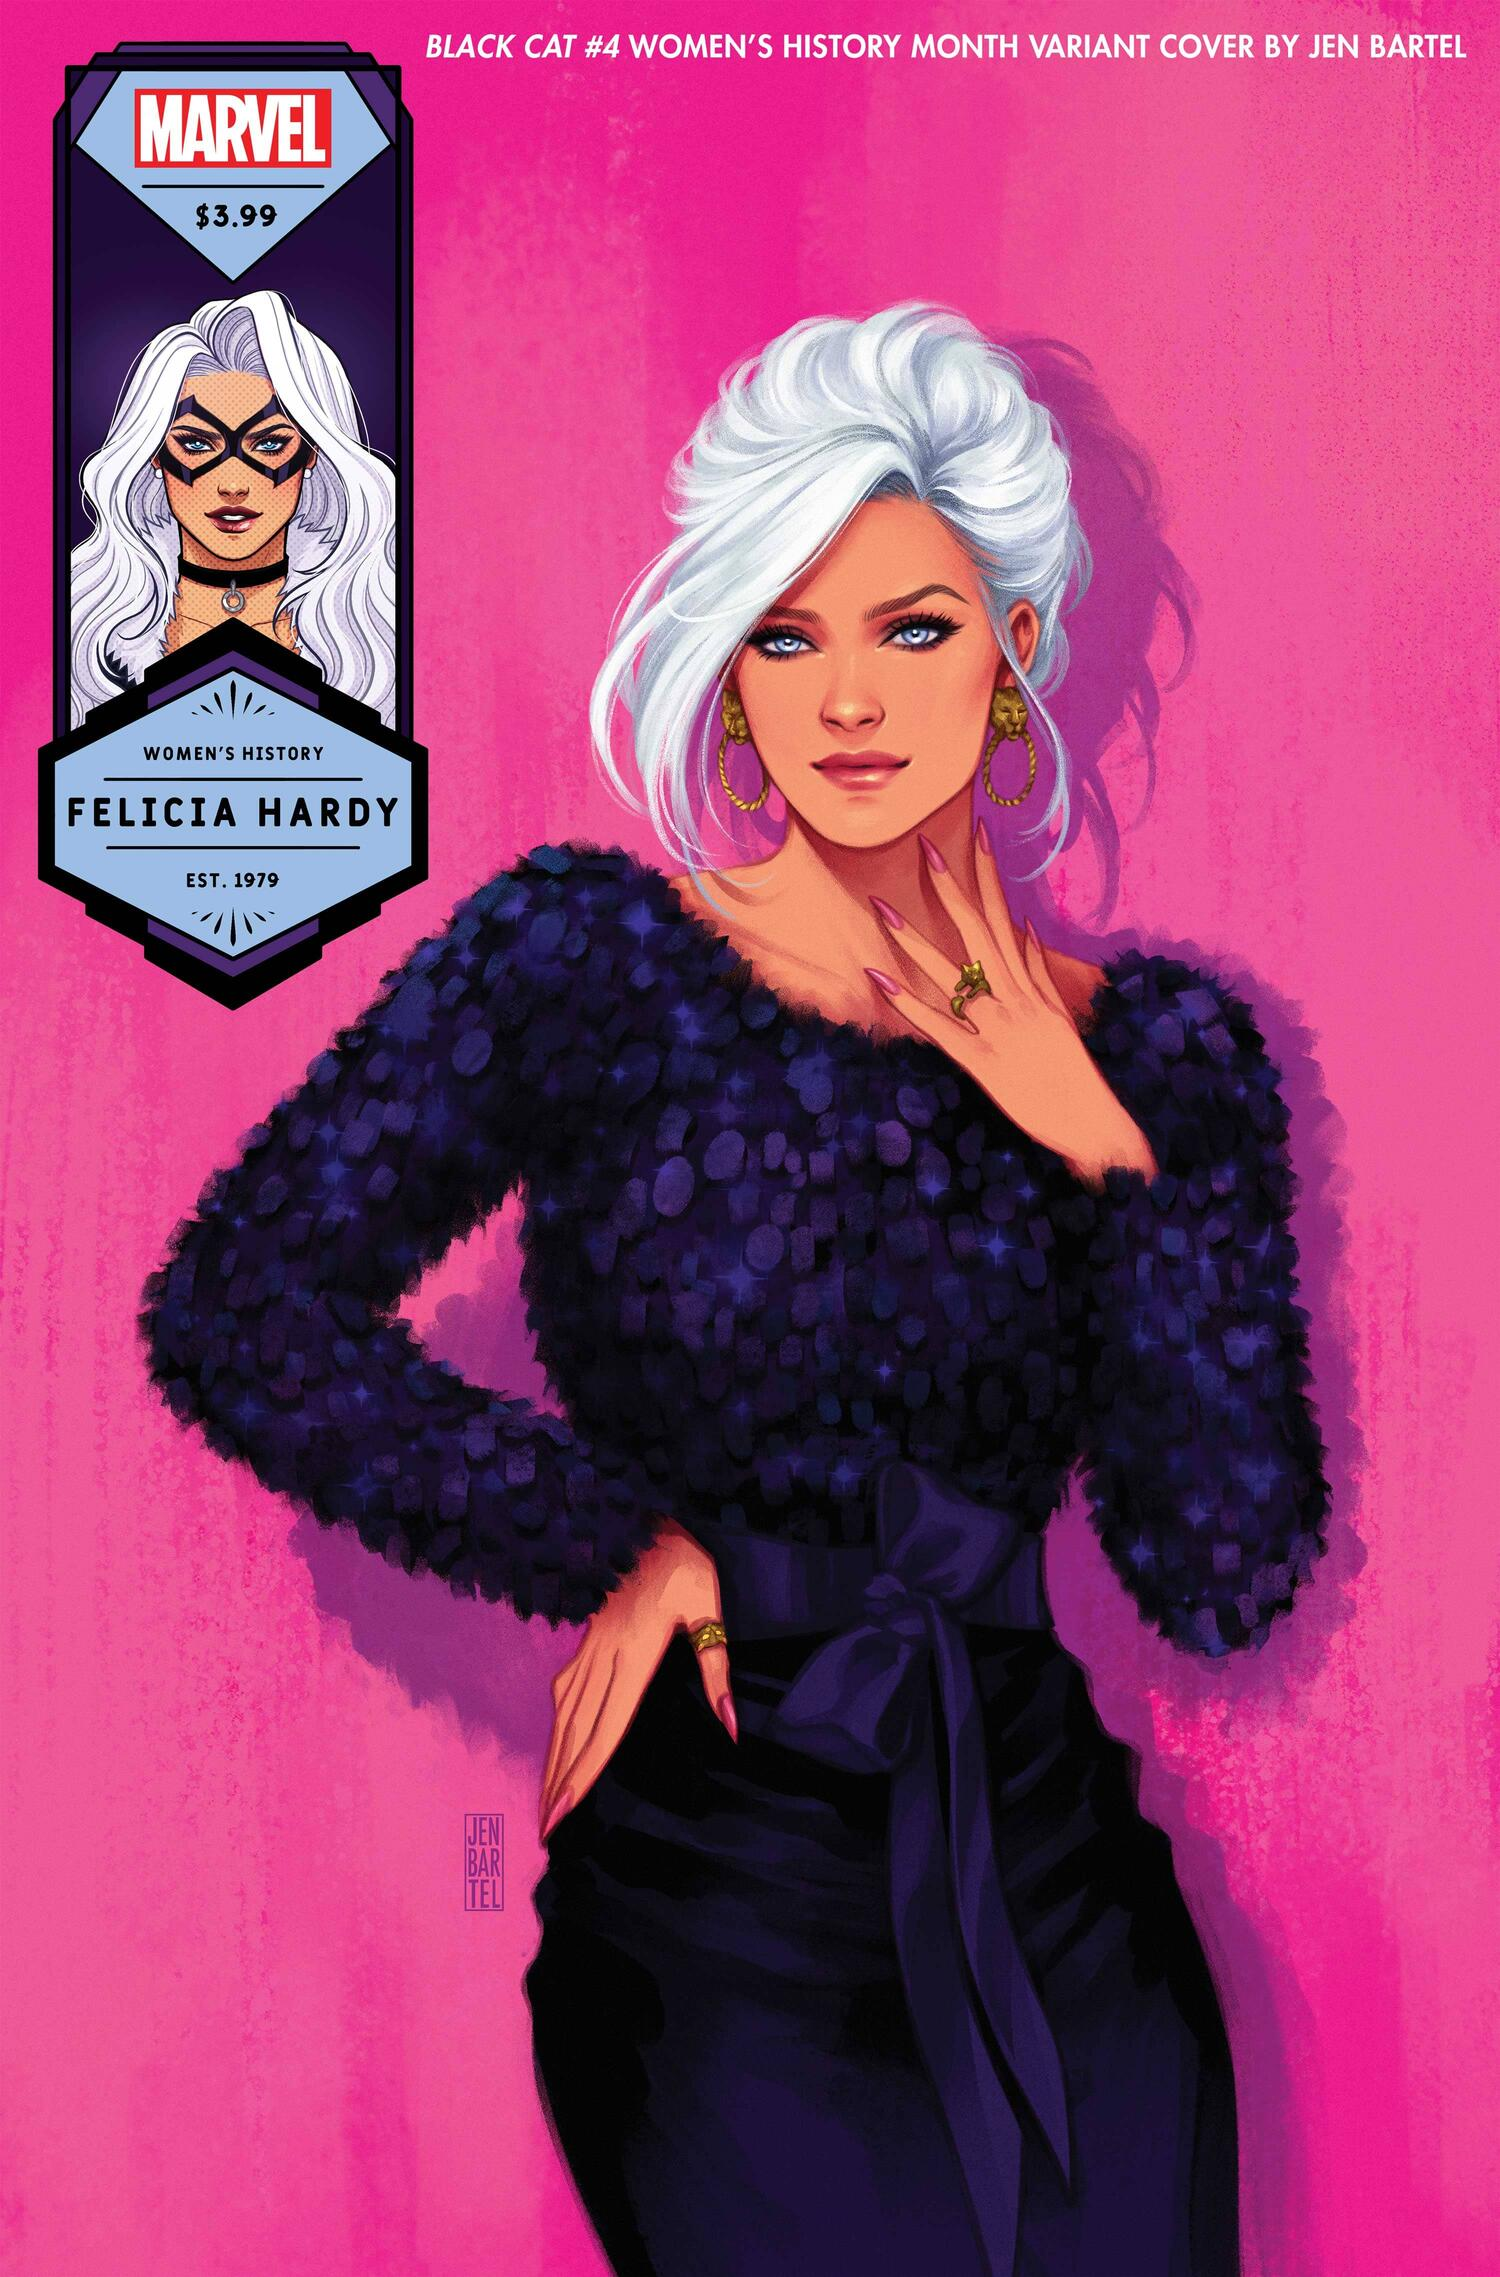 BLACK CAT #4 WOMEN'S HISTORY MONTH VARIANT COVER by JEN BARTEL